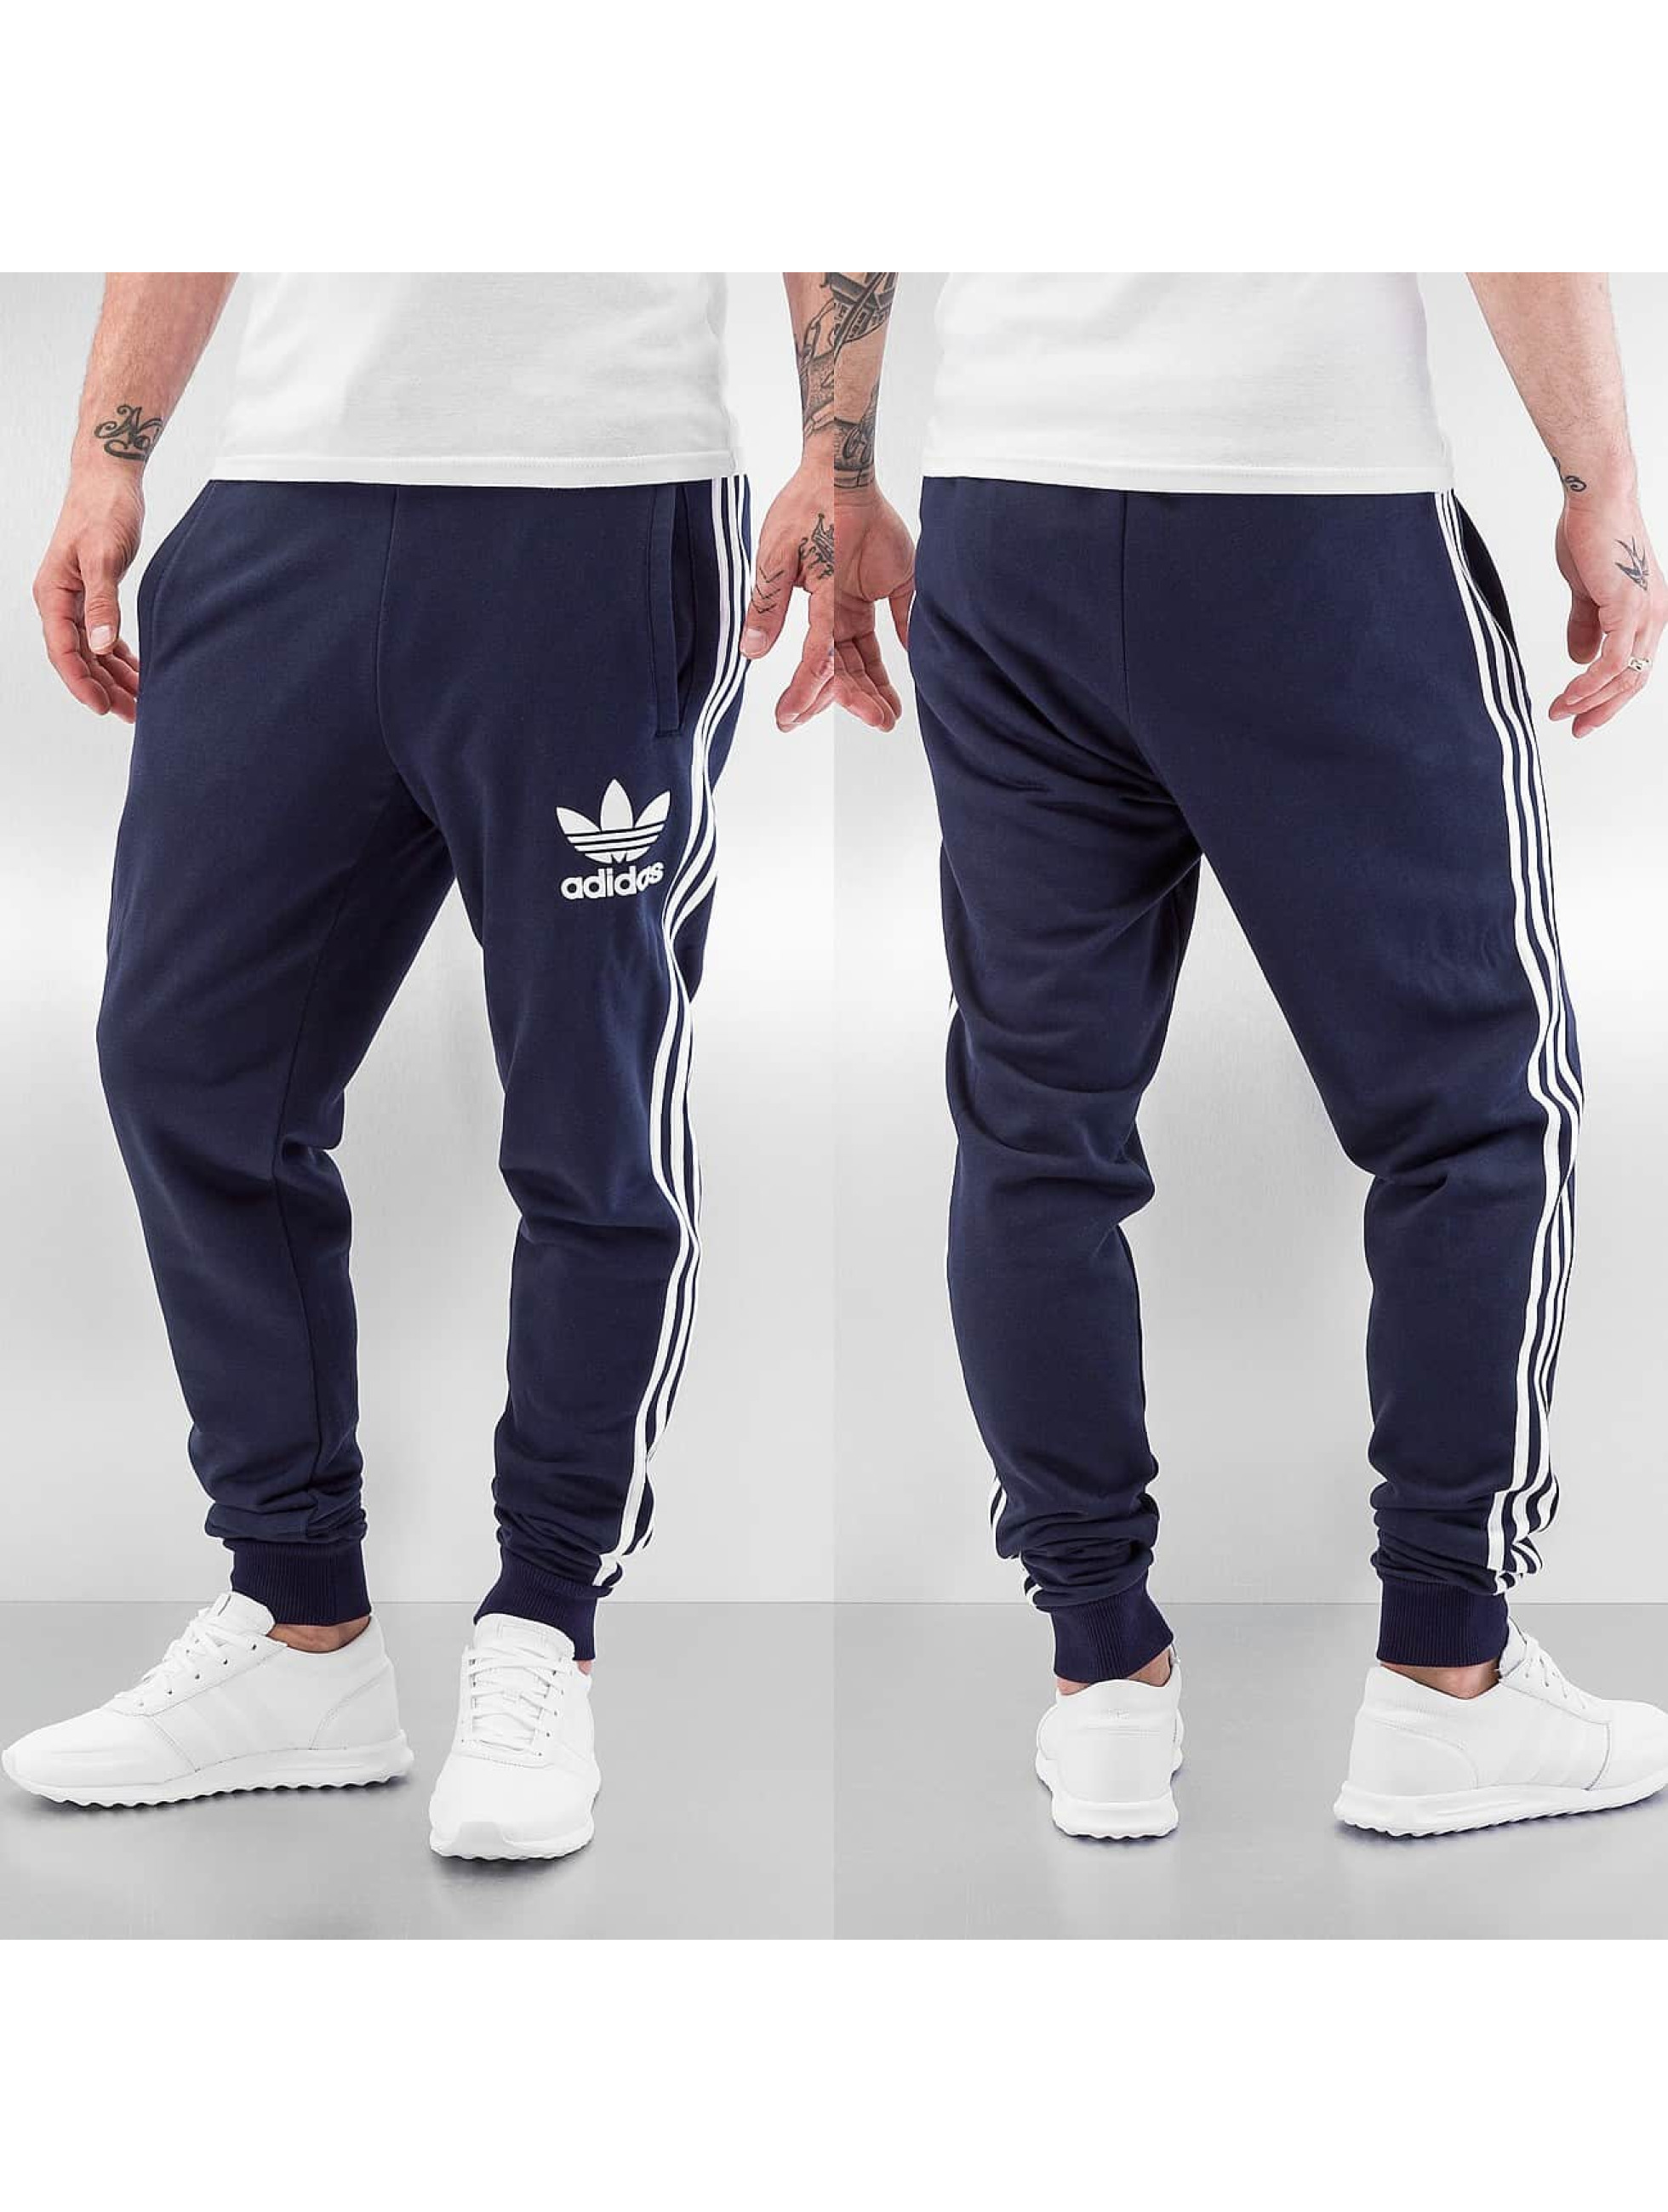 adidas herren hosen jogginghose clfn cuffed french terry. Black Bedroom Furniture Sets. Home Design Ideas